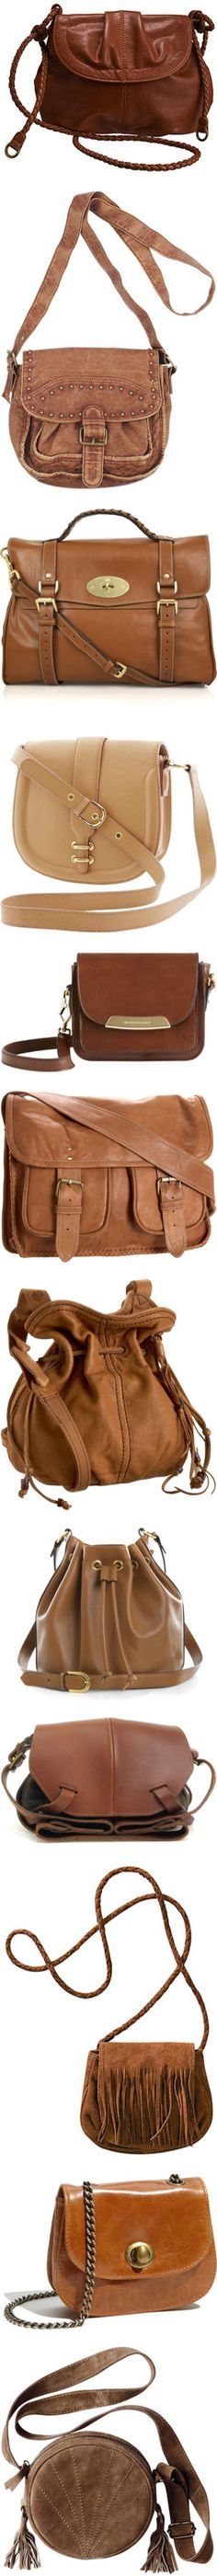 """""""satchels and other bags..."""" by diana1990 ❤ liked on Polyvore"""